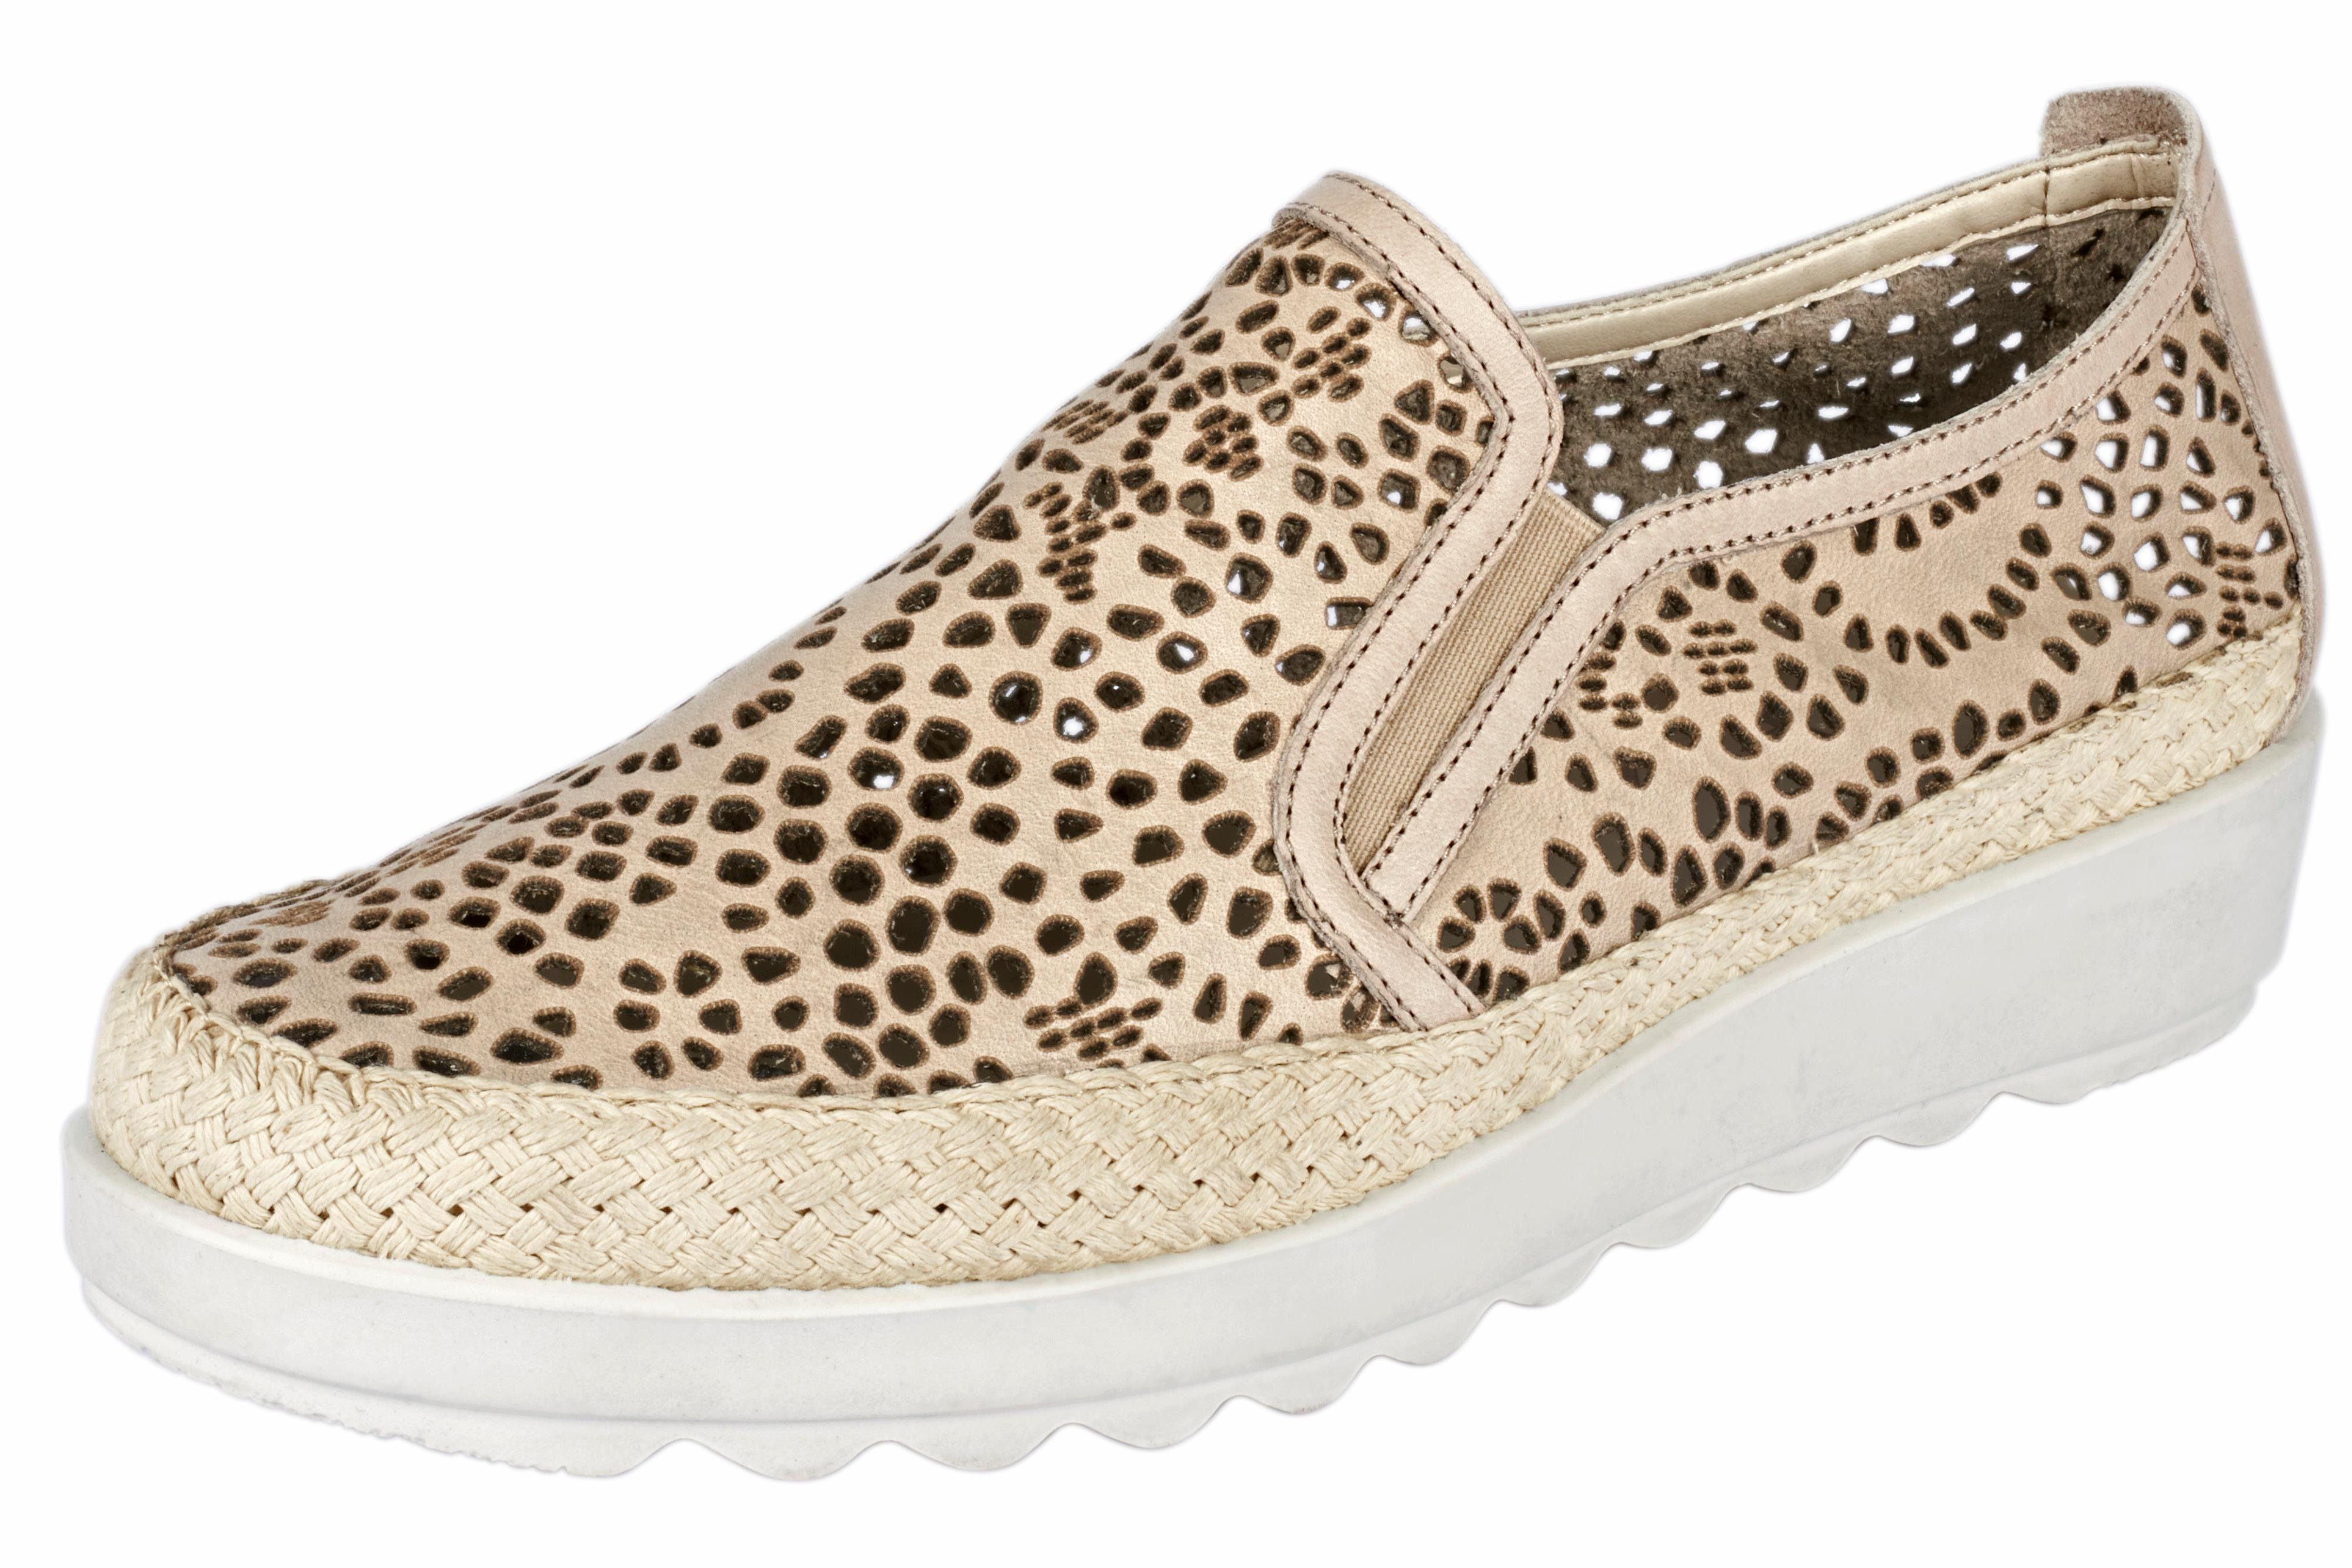 Flexx Slipper mit Cut-Out-Dessin, beige, 35 35